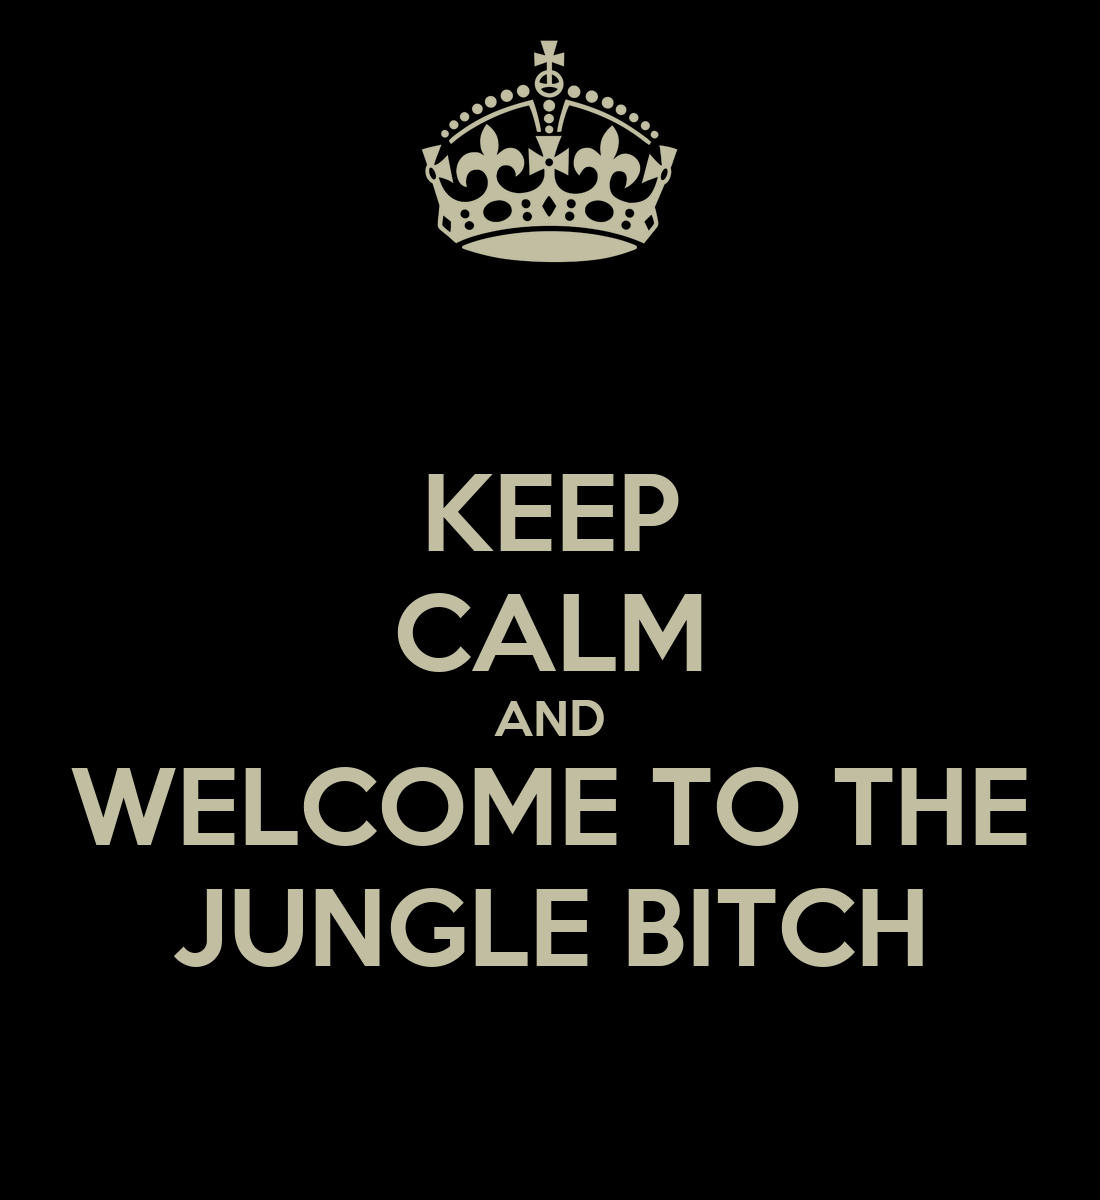 Cambio de GM Keep-calm-and-welcome-to-the-jungle-bitch-8